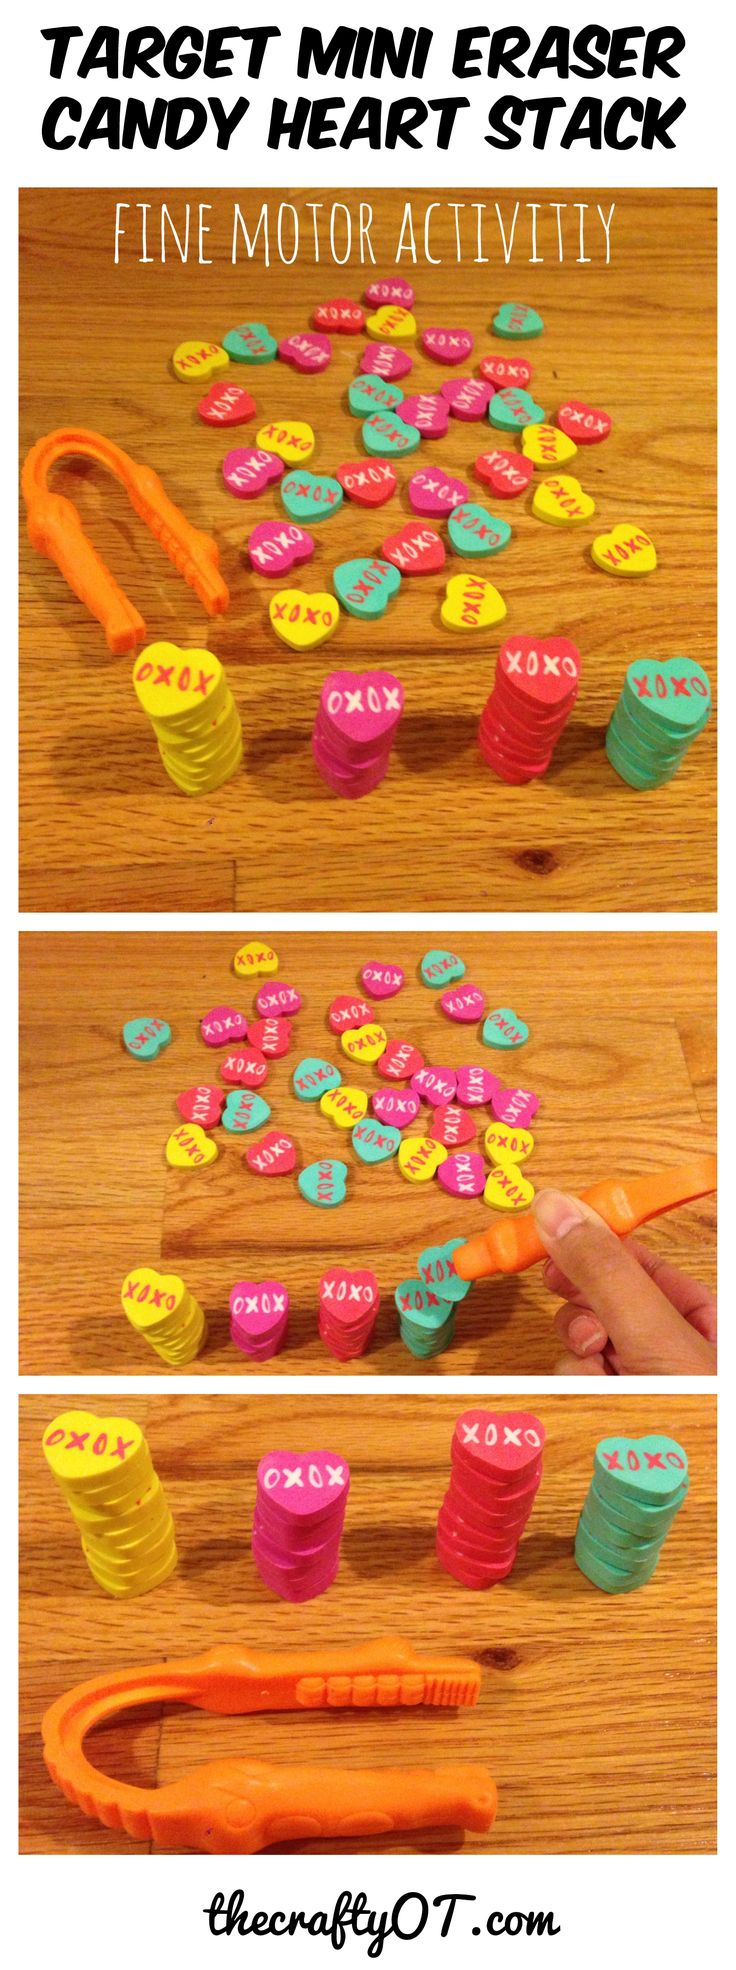 d03a0536566f823aeace36e2a5cd27b0 - Fine motor candy heart stack, Target mini erasers, valentine's day 2018, hand st...